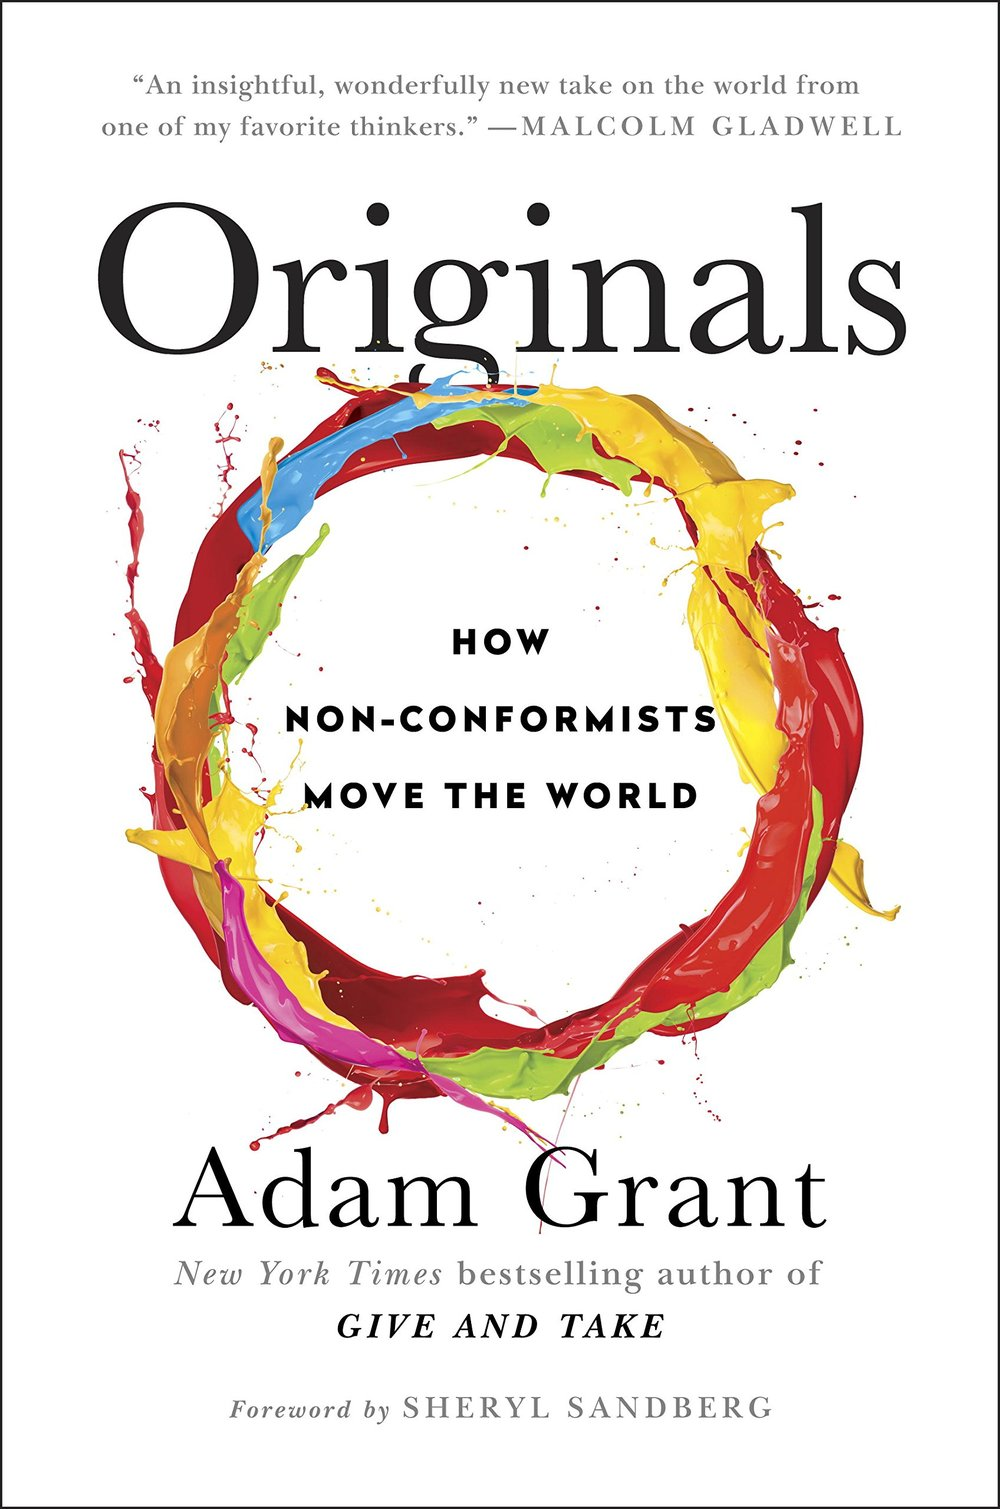 Grant, Adam - Originals.jpg